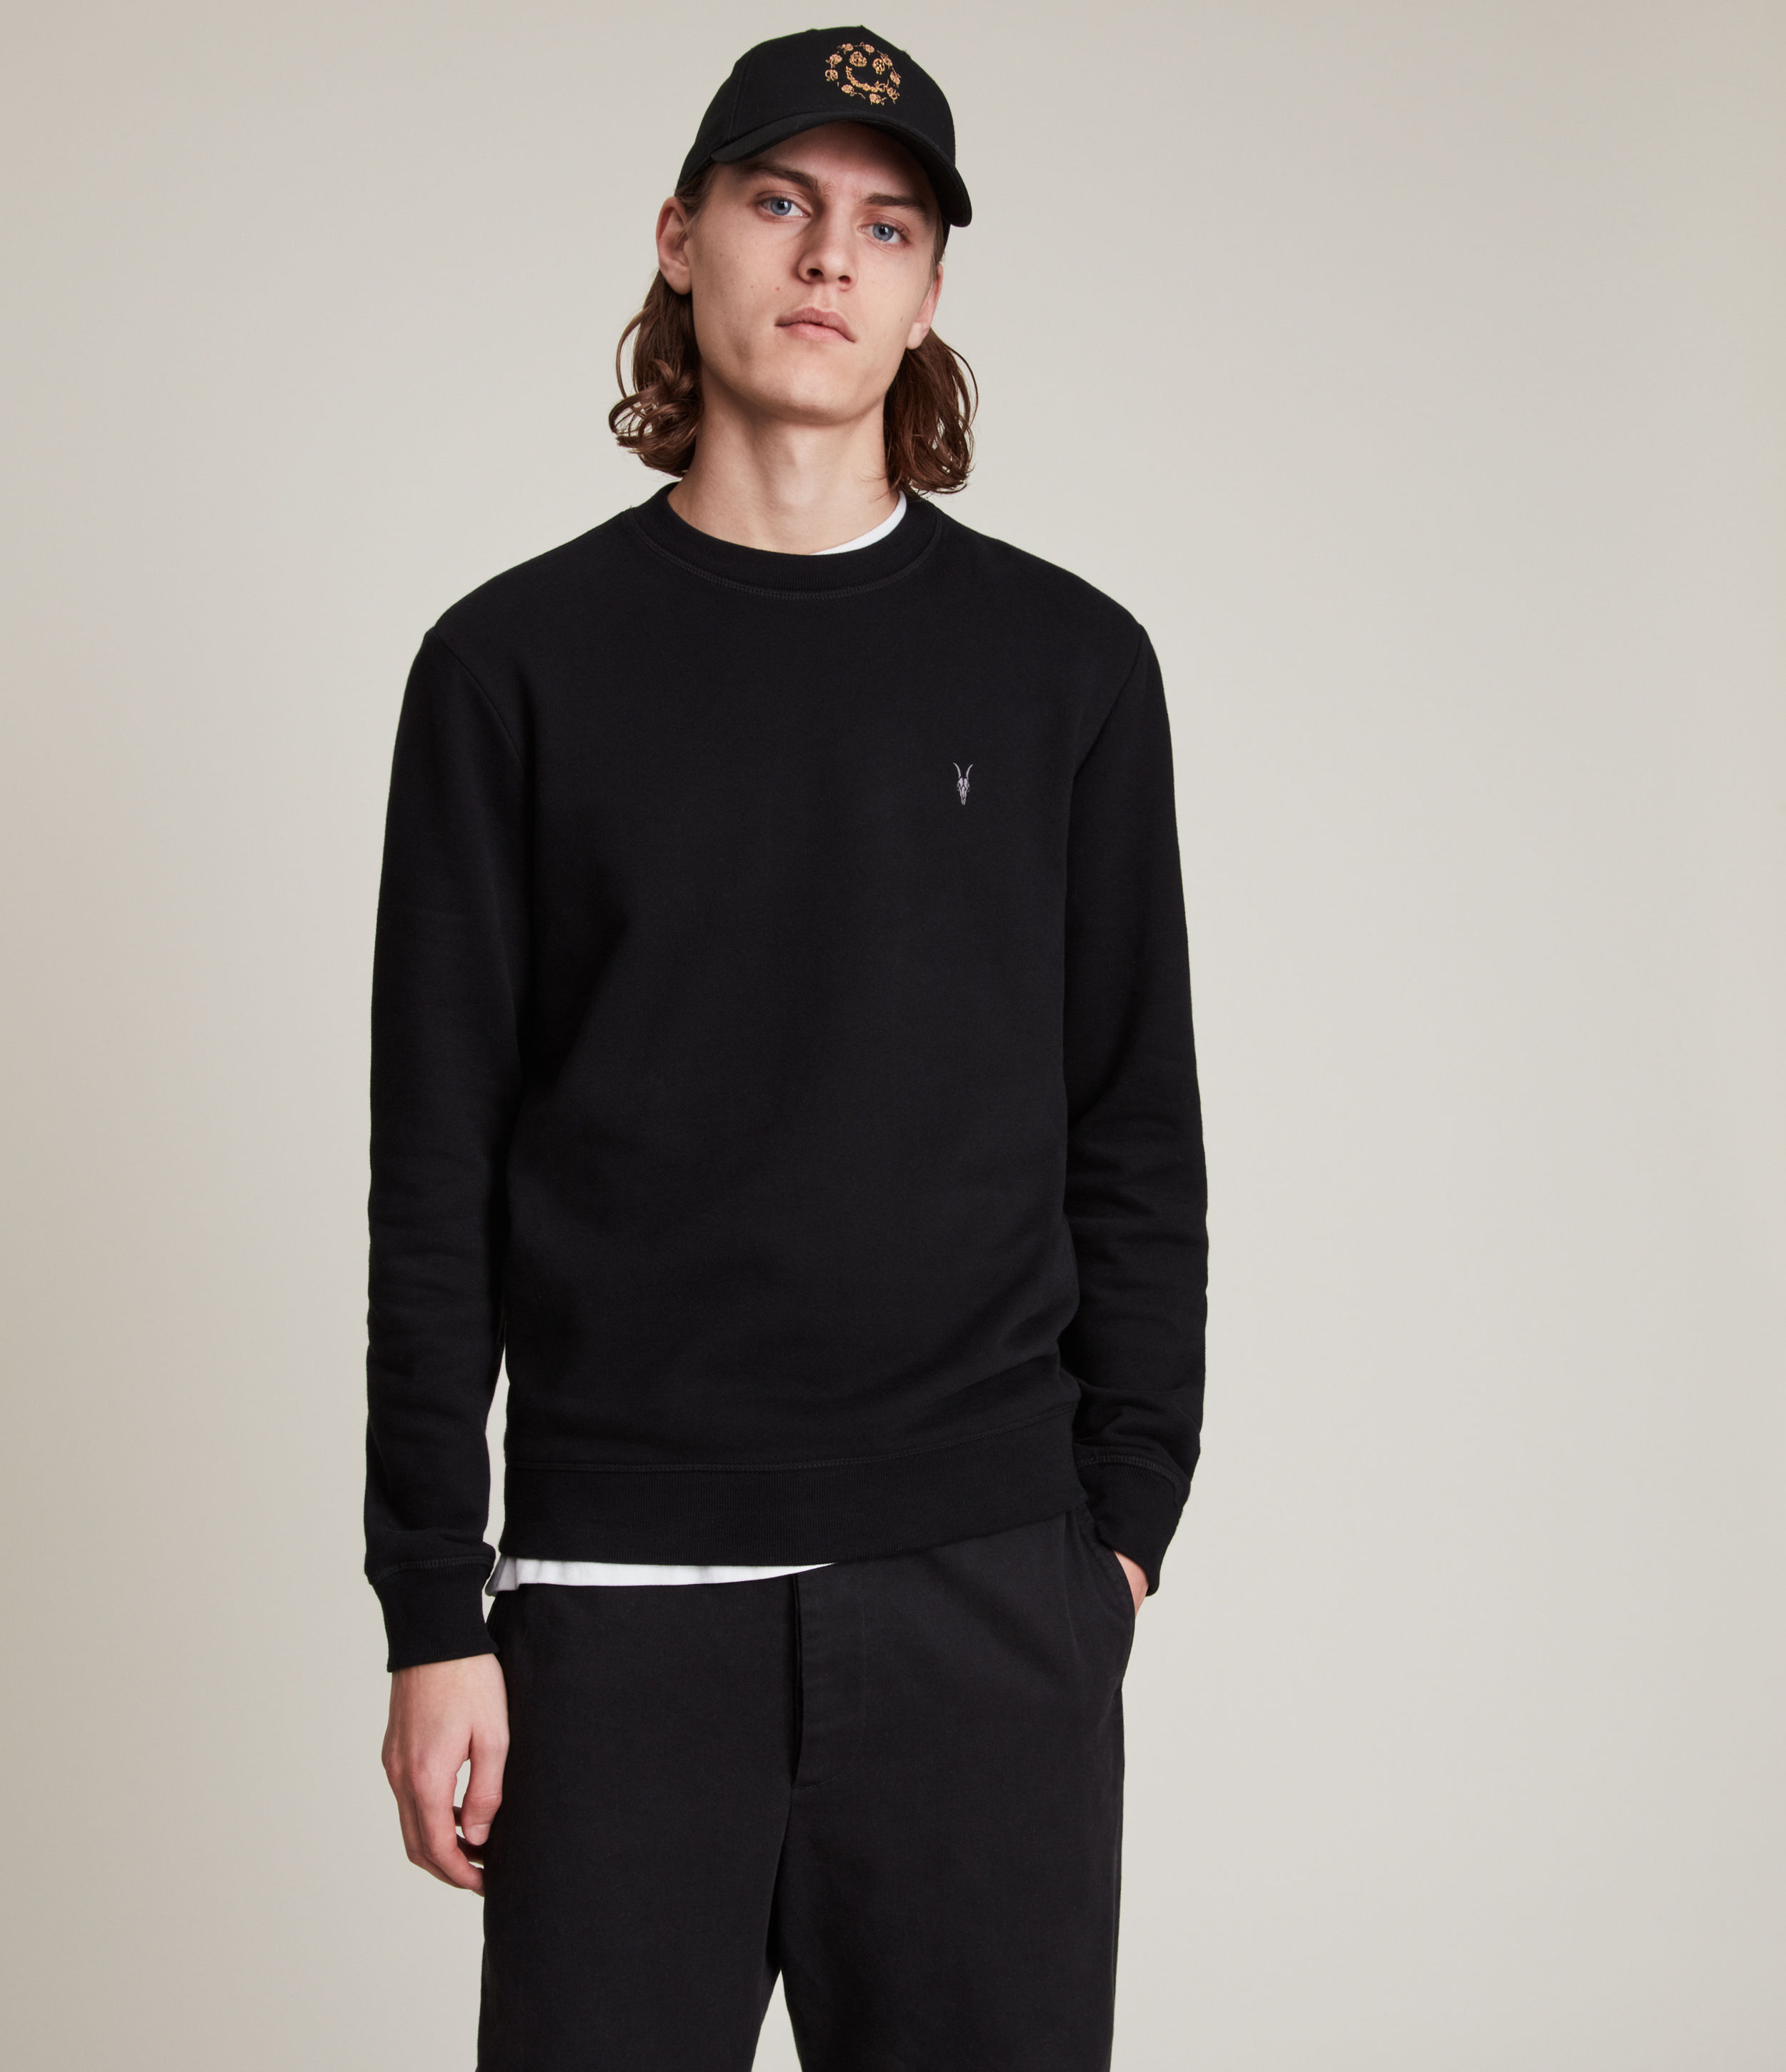 AllSaints Men's Cotton Slim Fit Raven Sweatshirt, Black, Size: L